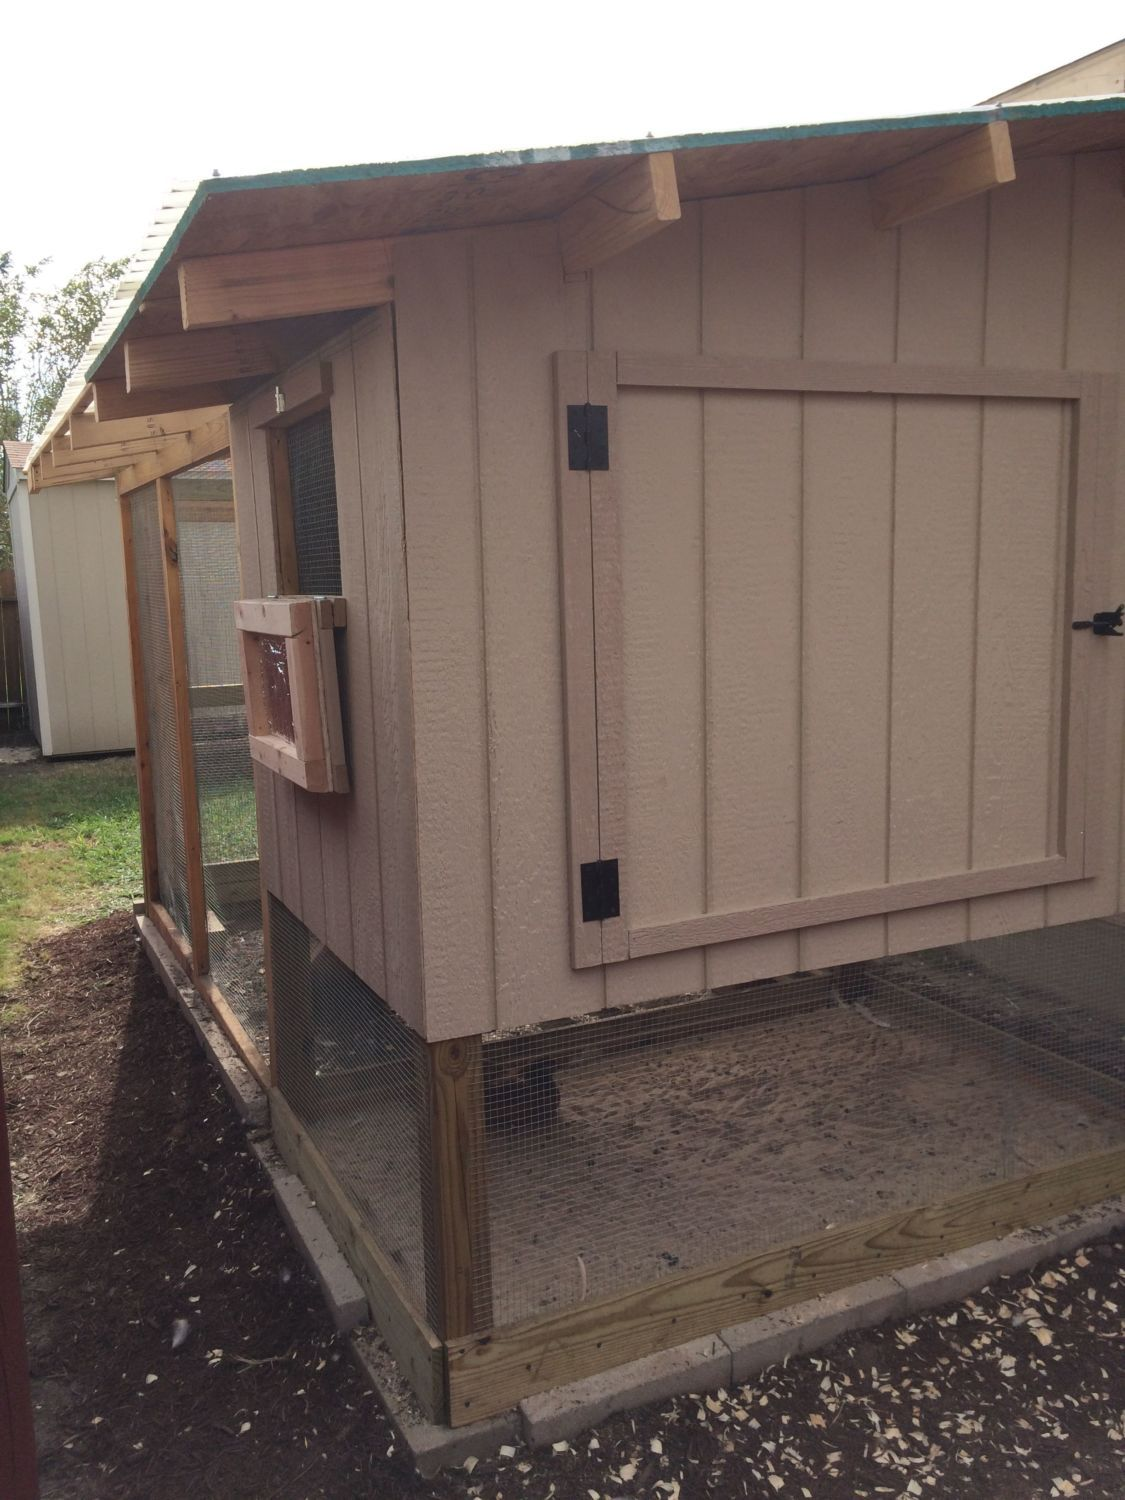 Back View - Big Door for cleaning and small window for aeration. Under the hen house, they have a sand pit.